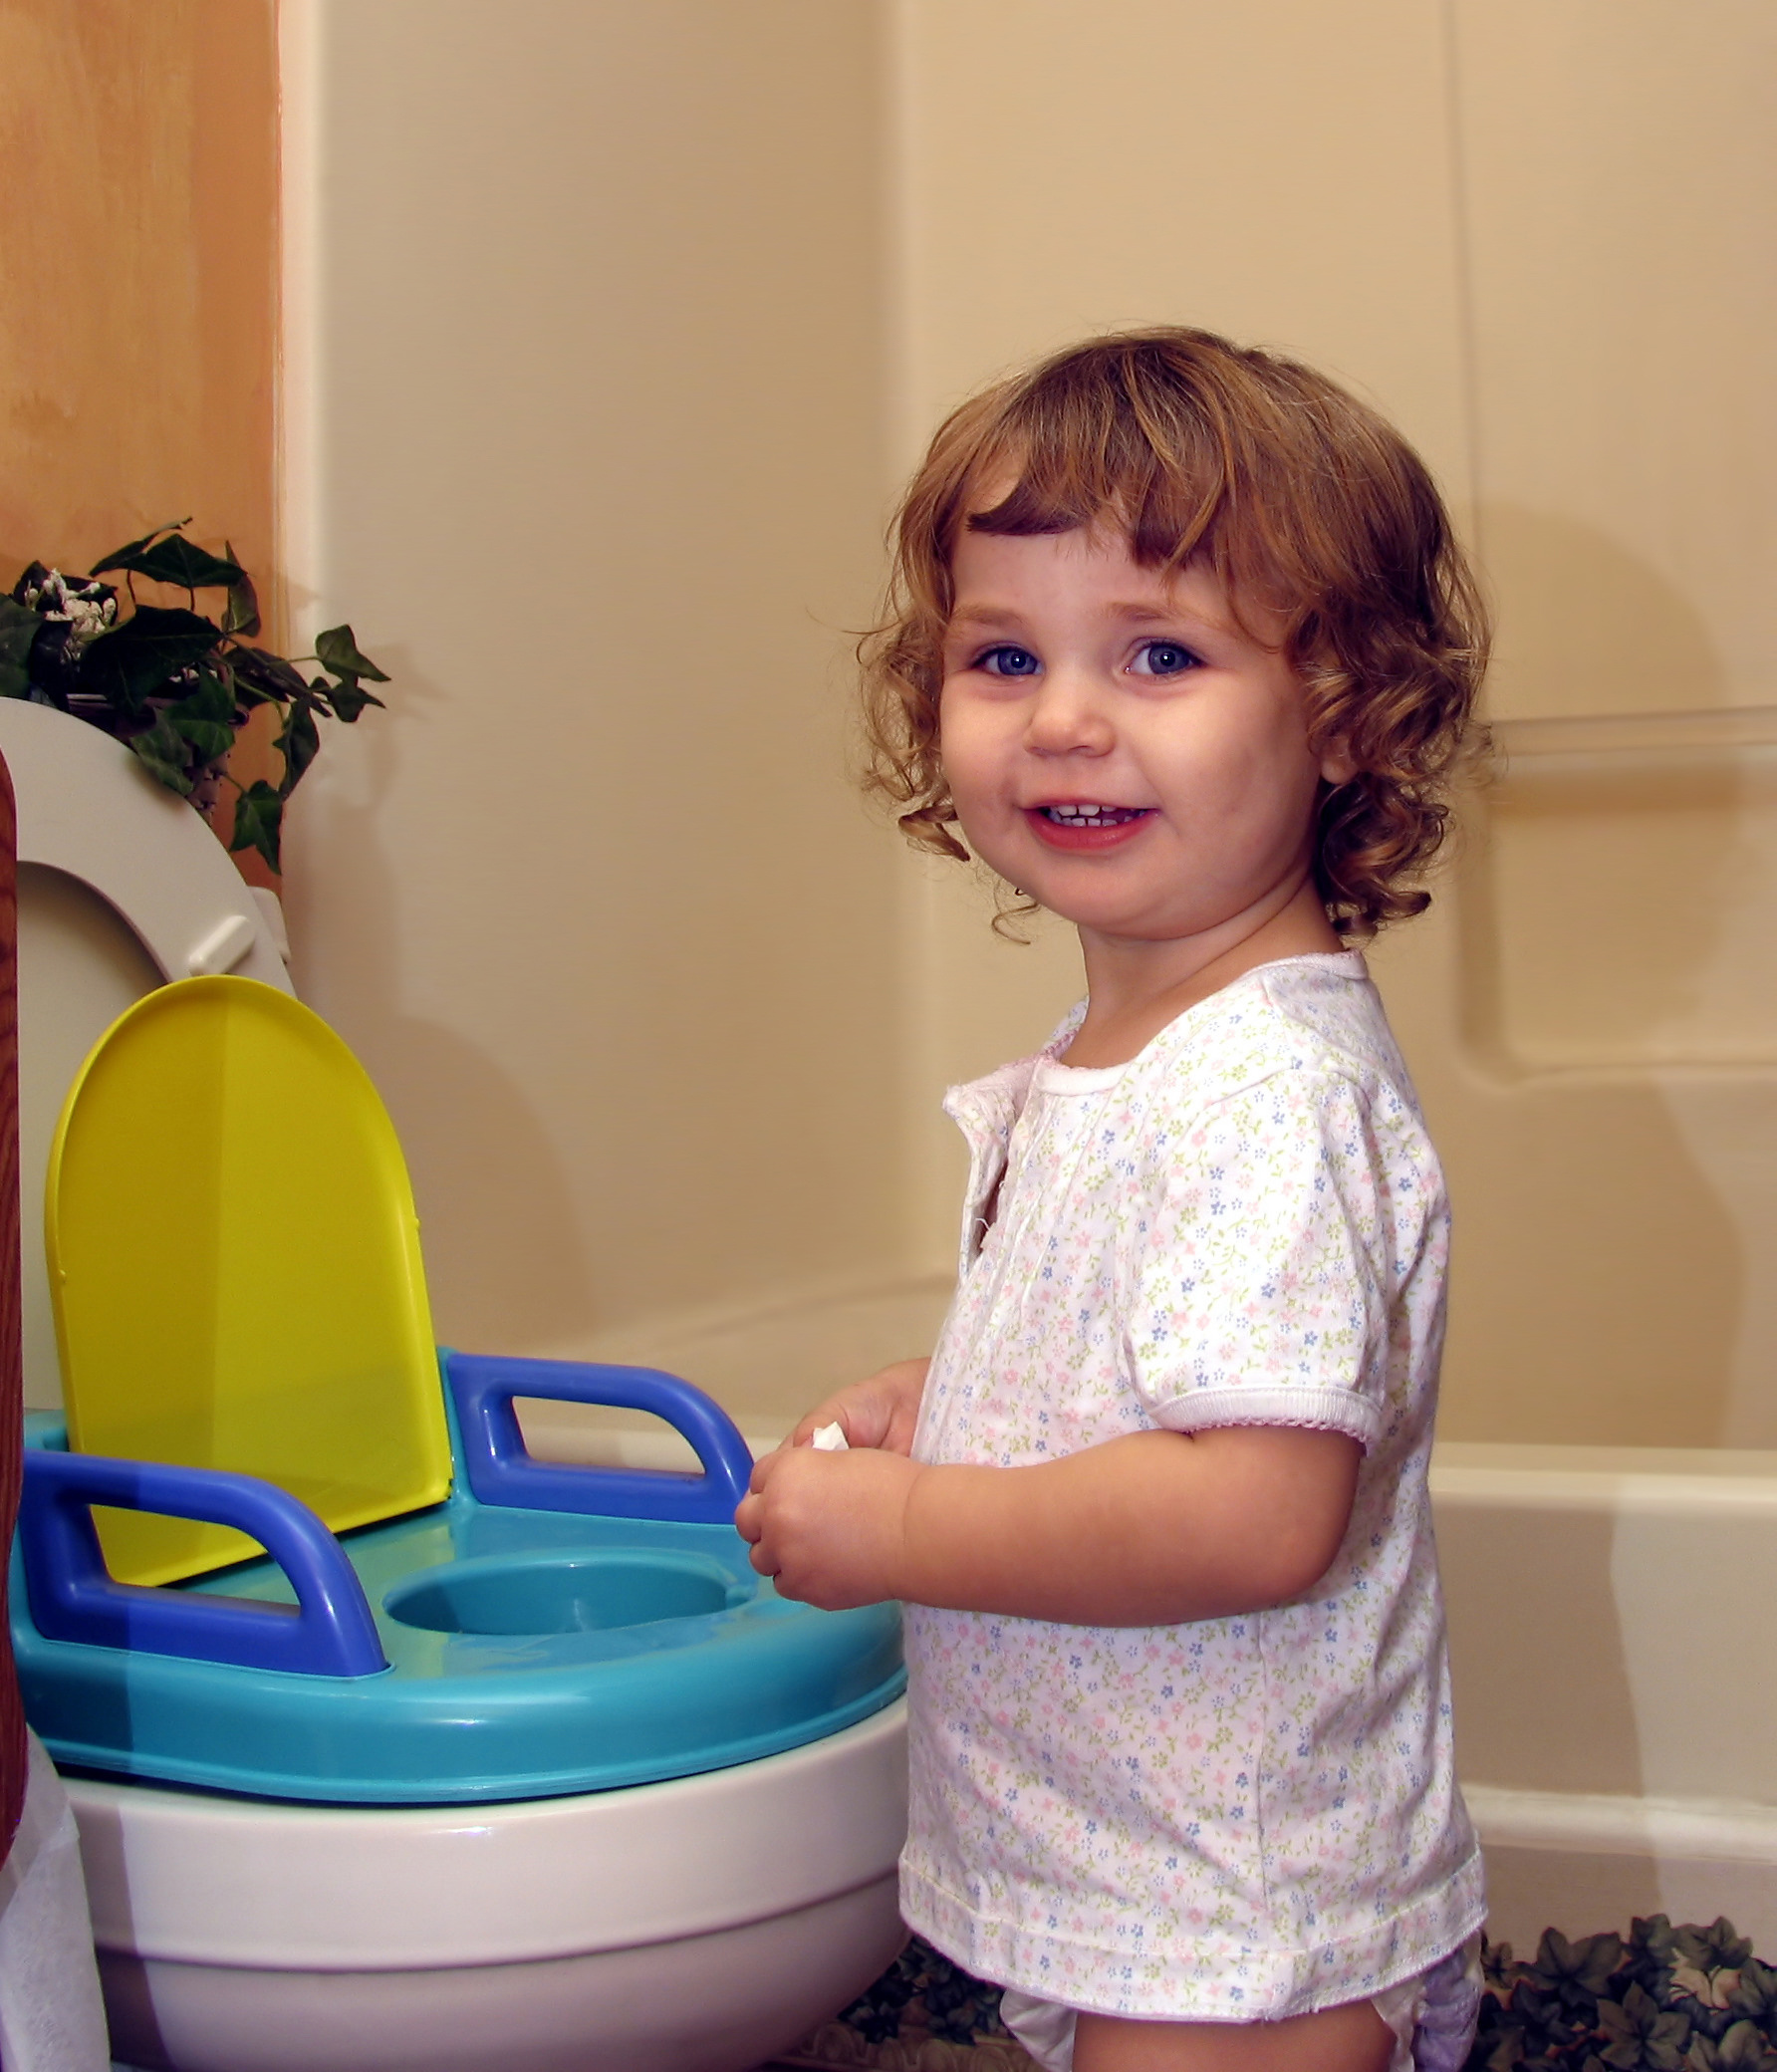 When Should You Start Toilet Training Your Child?